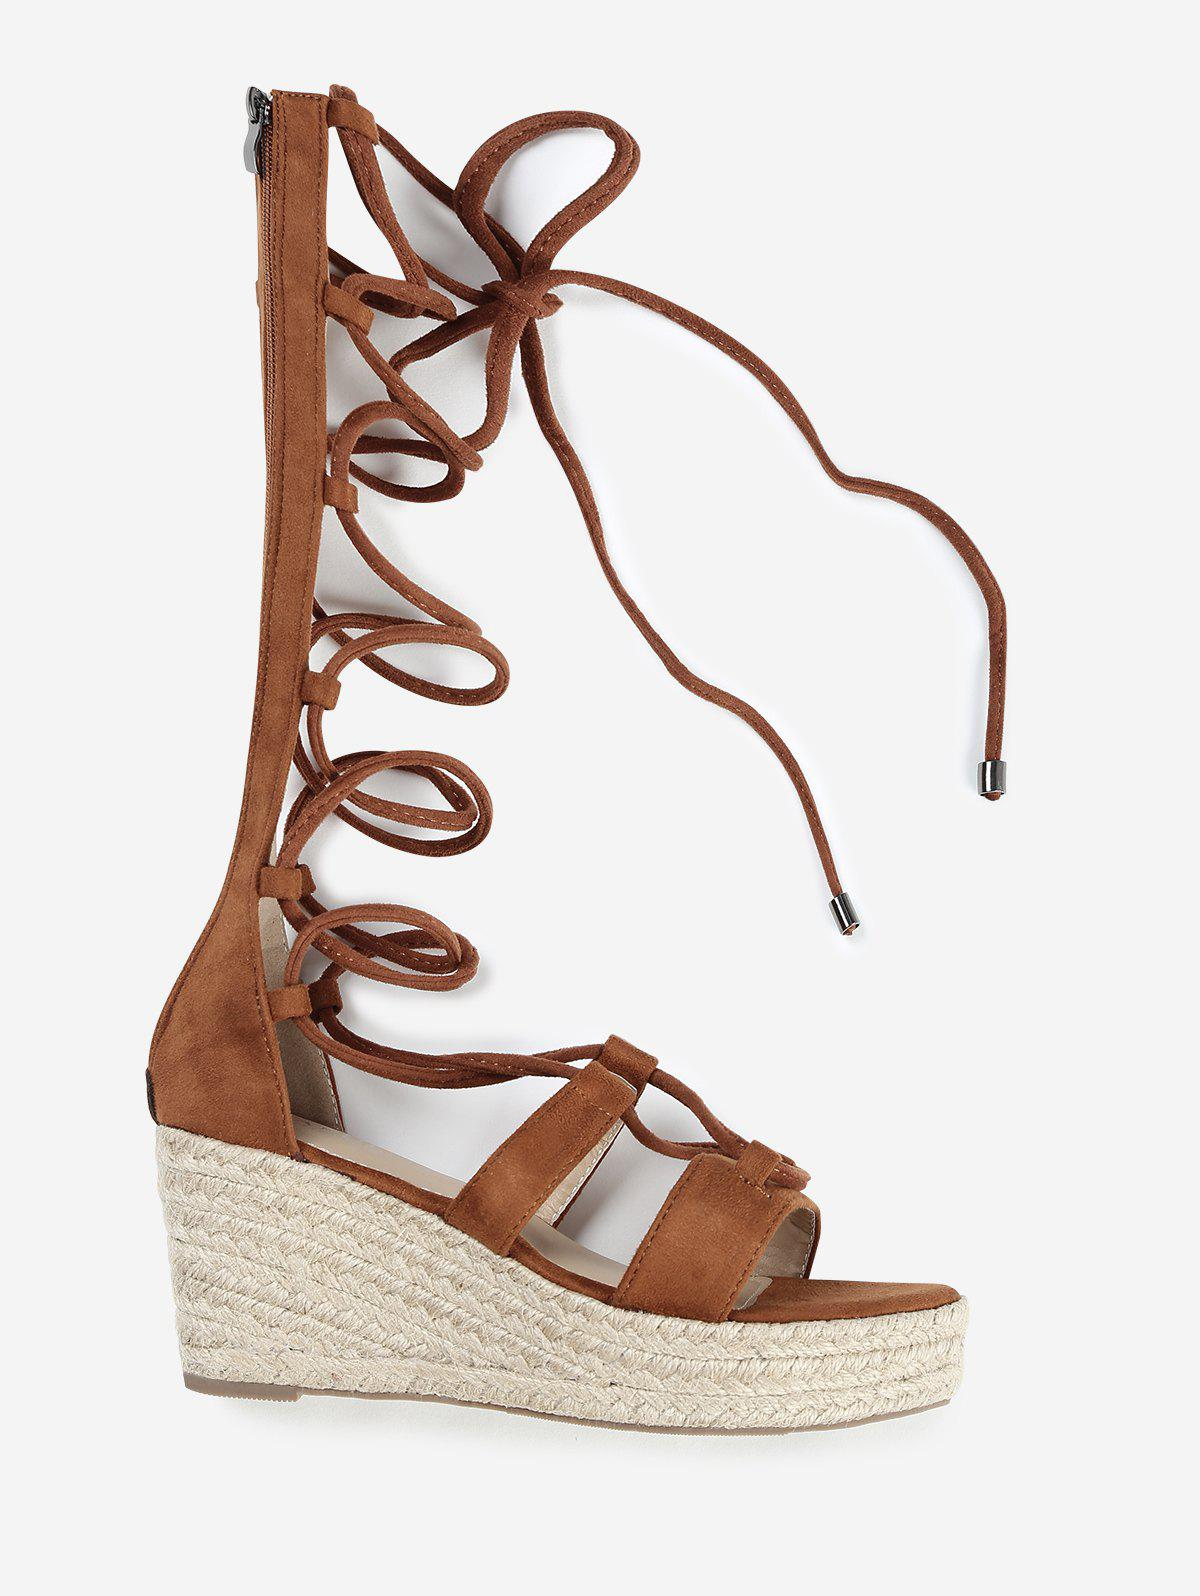 ZAFUL Lace Up Wedge Heel Sandals